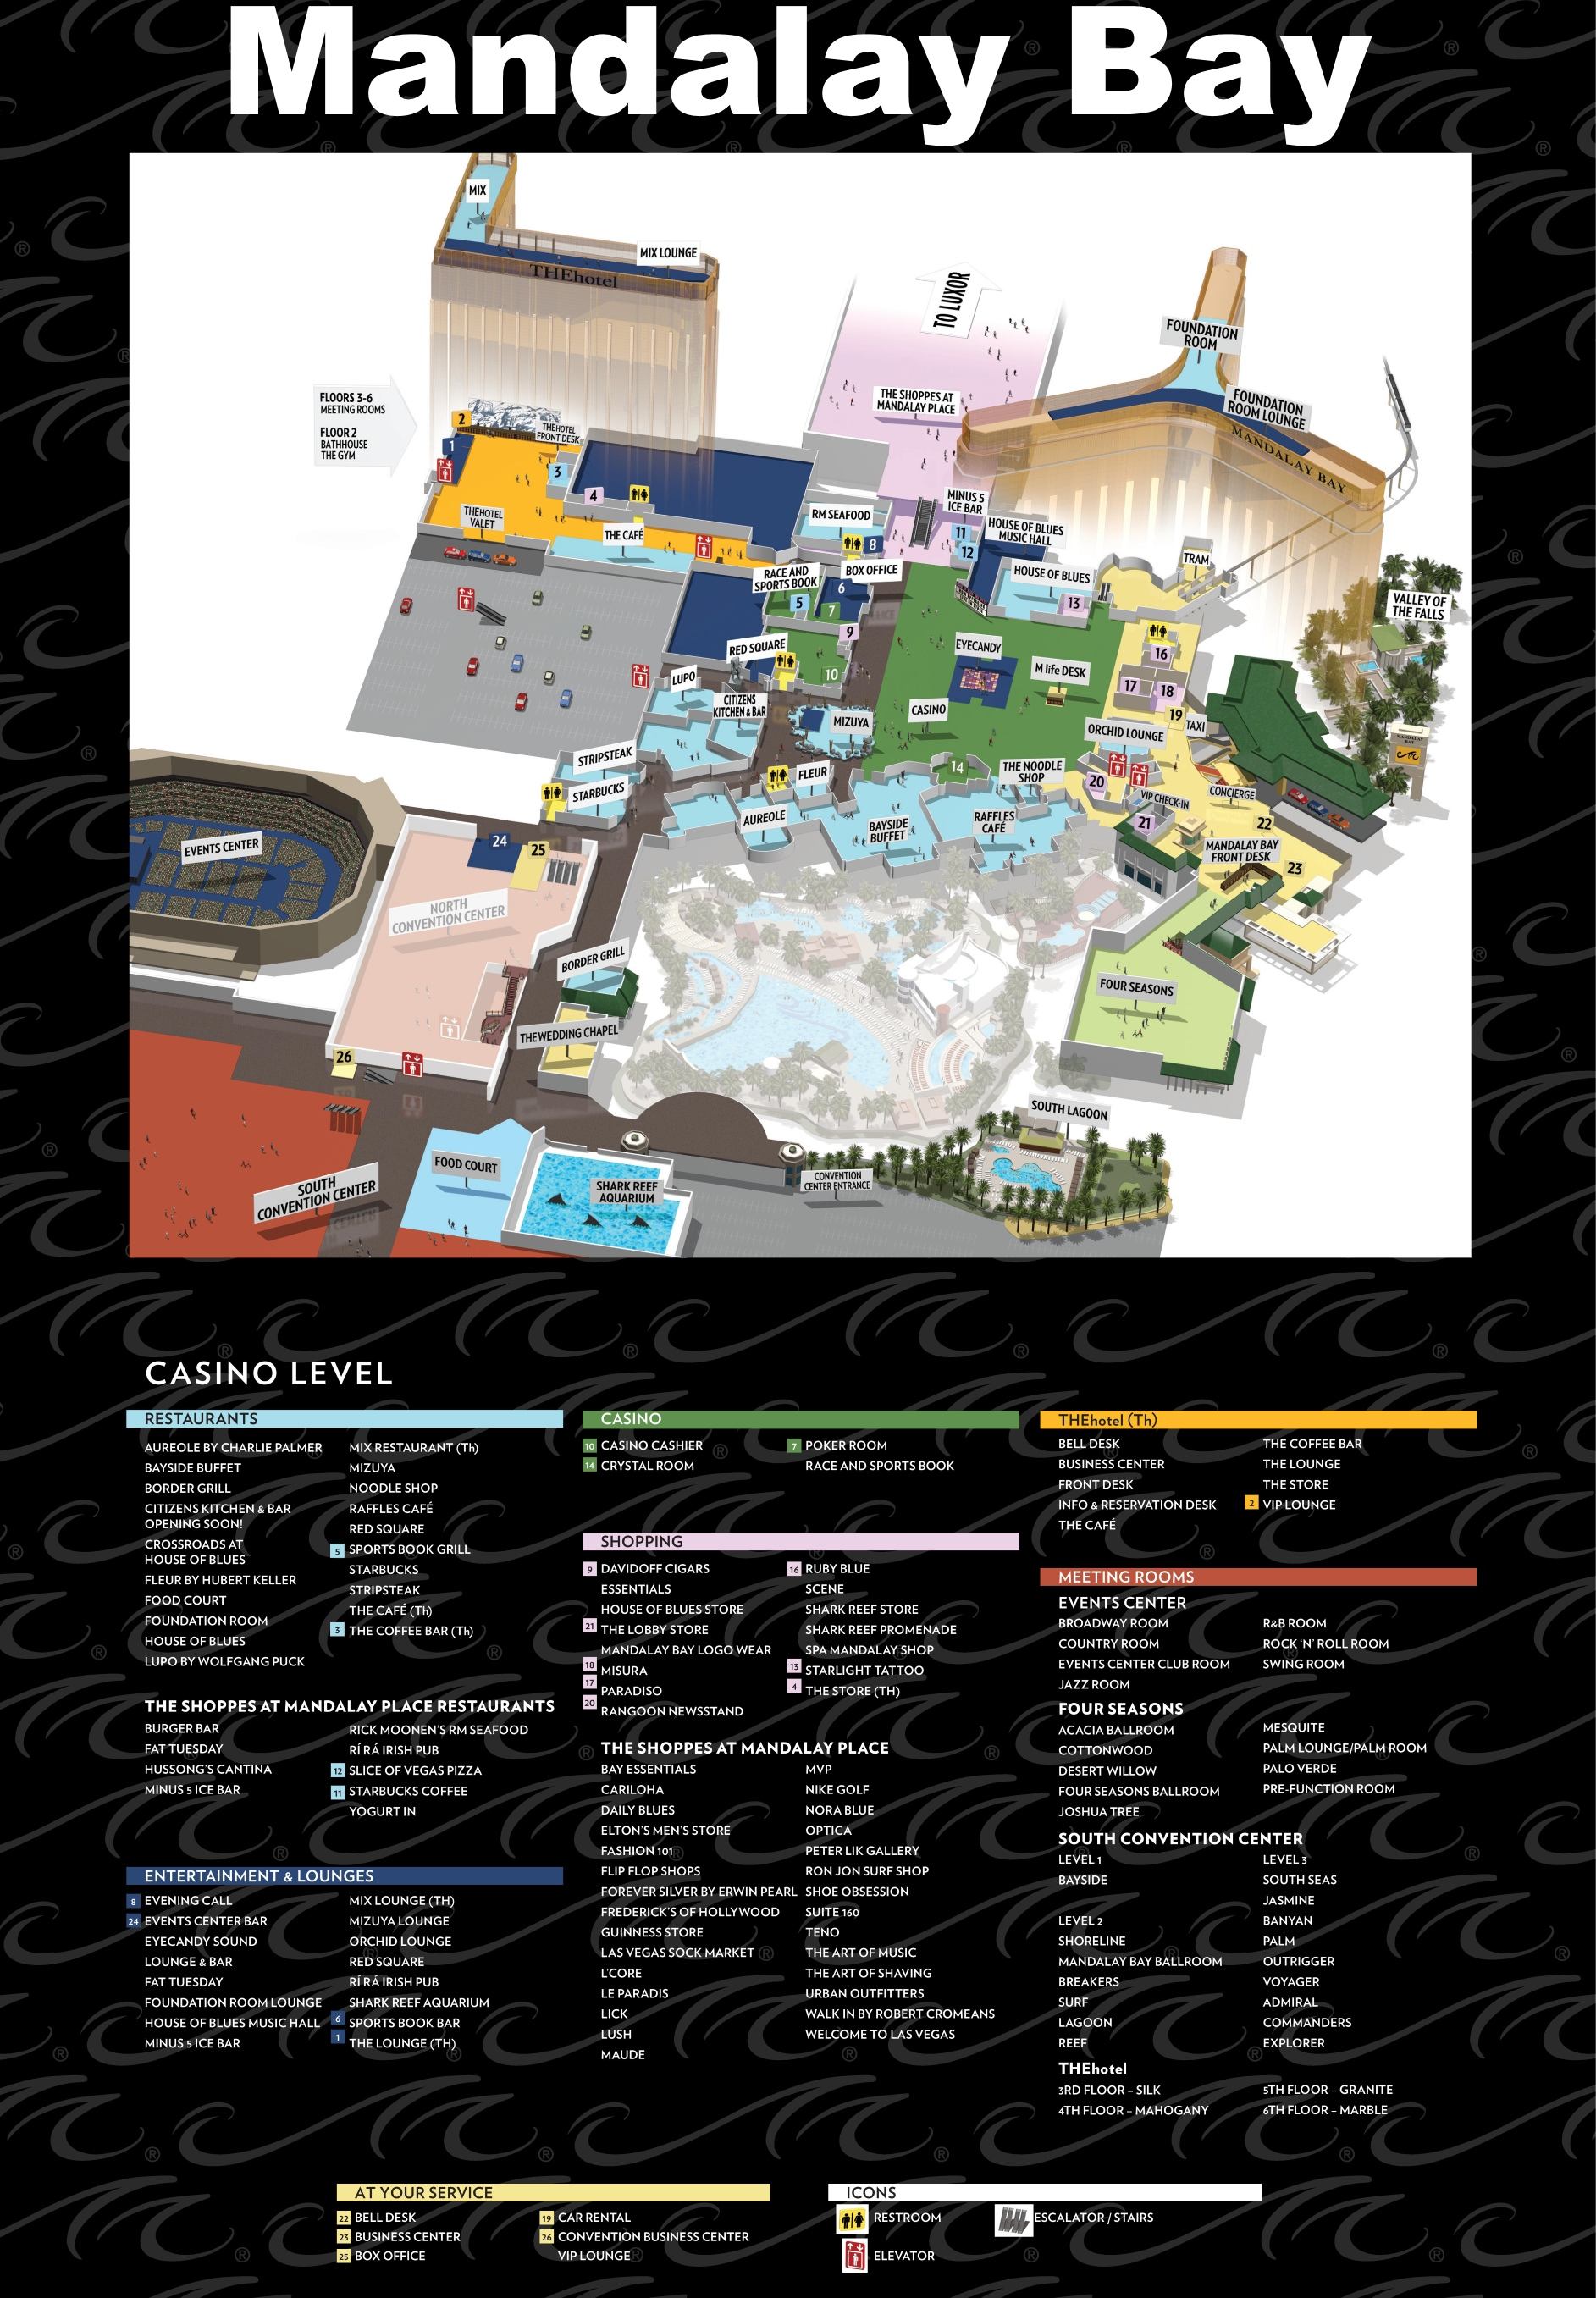 Mandalay Bay Map Las Vegas Mandalay Bay hotel map Mandalay Bay Map